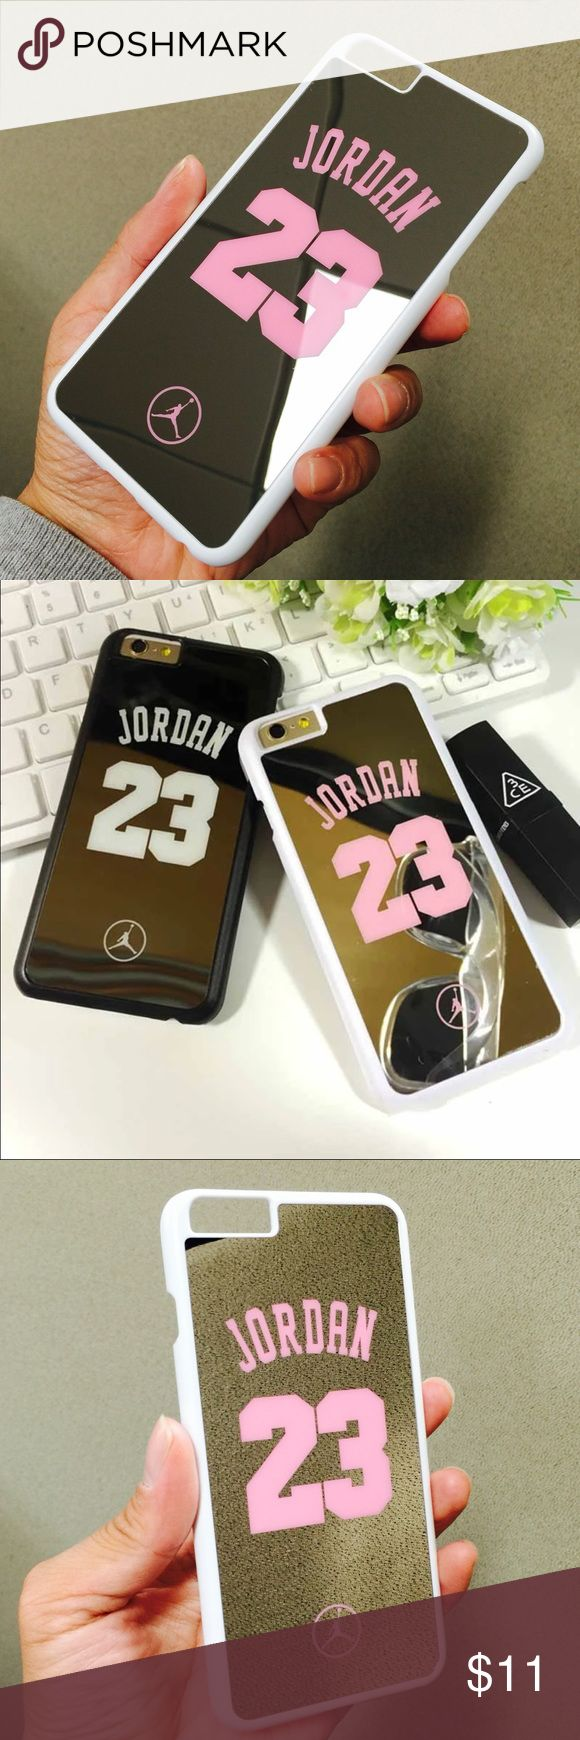 "i6+/6s+ Cute 23 Jump-man Jordan mirror case i6+/6s+ Cute 23 Jump-man Jordan mirror case New arrivals!!!!!! Stylish protective case!!!!!!!!  Brand new fashion high quality cute 23 Jump-man Air Jordan hard mirror case compatible for iPhone 6 Plus and 6s Plus.   Fashion, luxury, convenience, Shockproof, anti-knock, drip-proof, scratch-proof  Color: White/Pink  Size: iPhone 6 Plus / 6s Plus, 5.5""  Fast shipping  Please make sure you are purchasing the size case. Accessories"